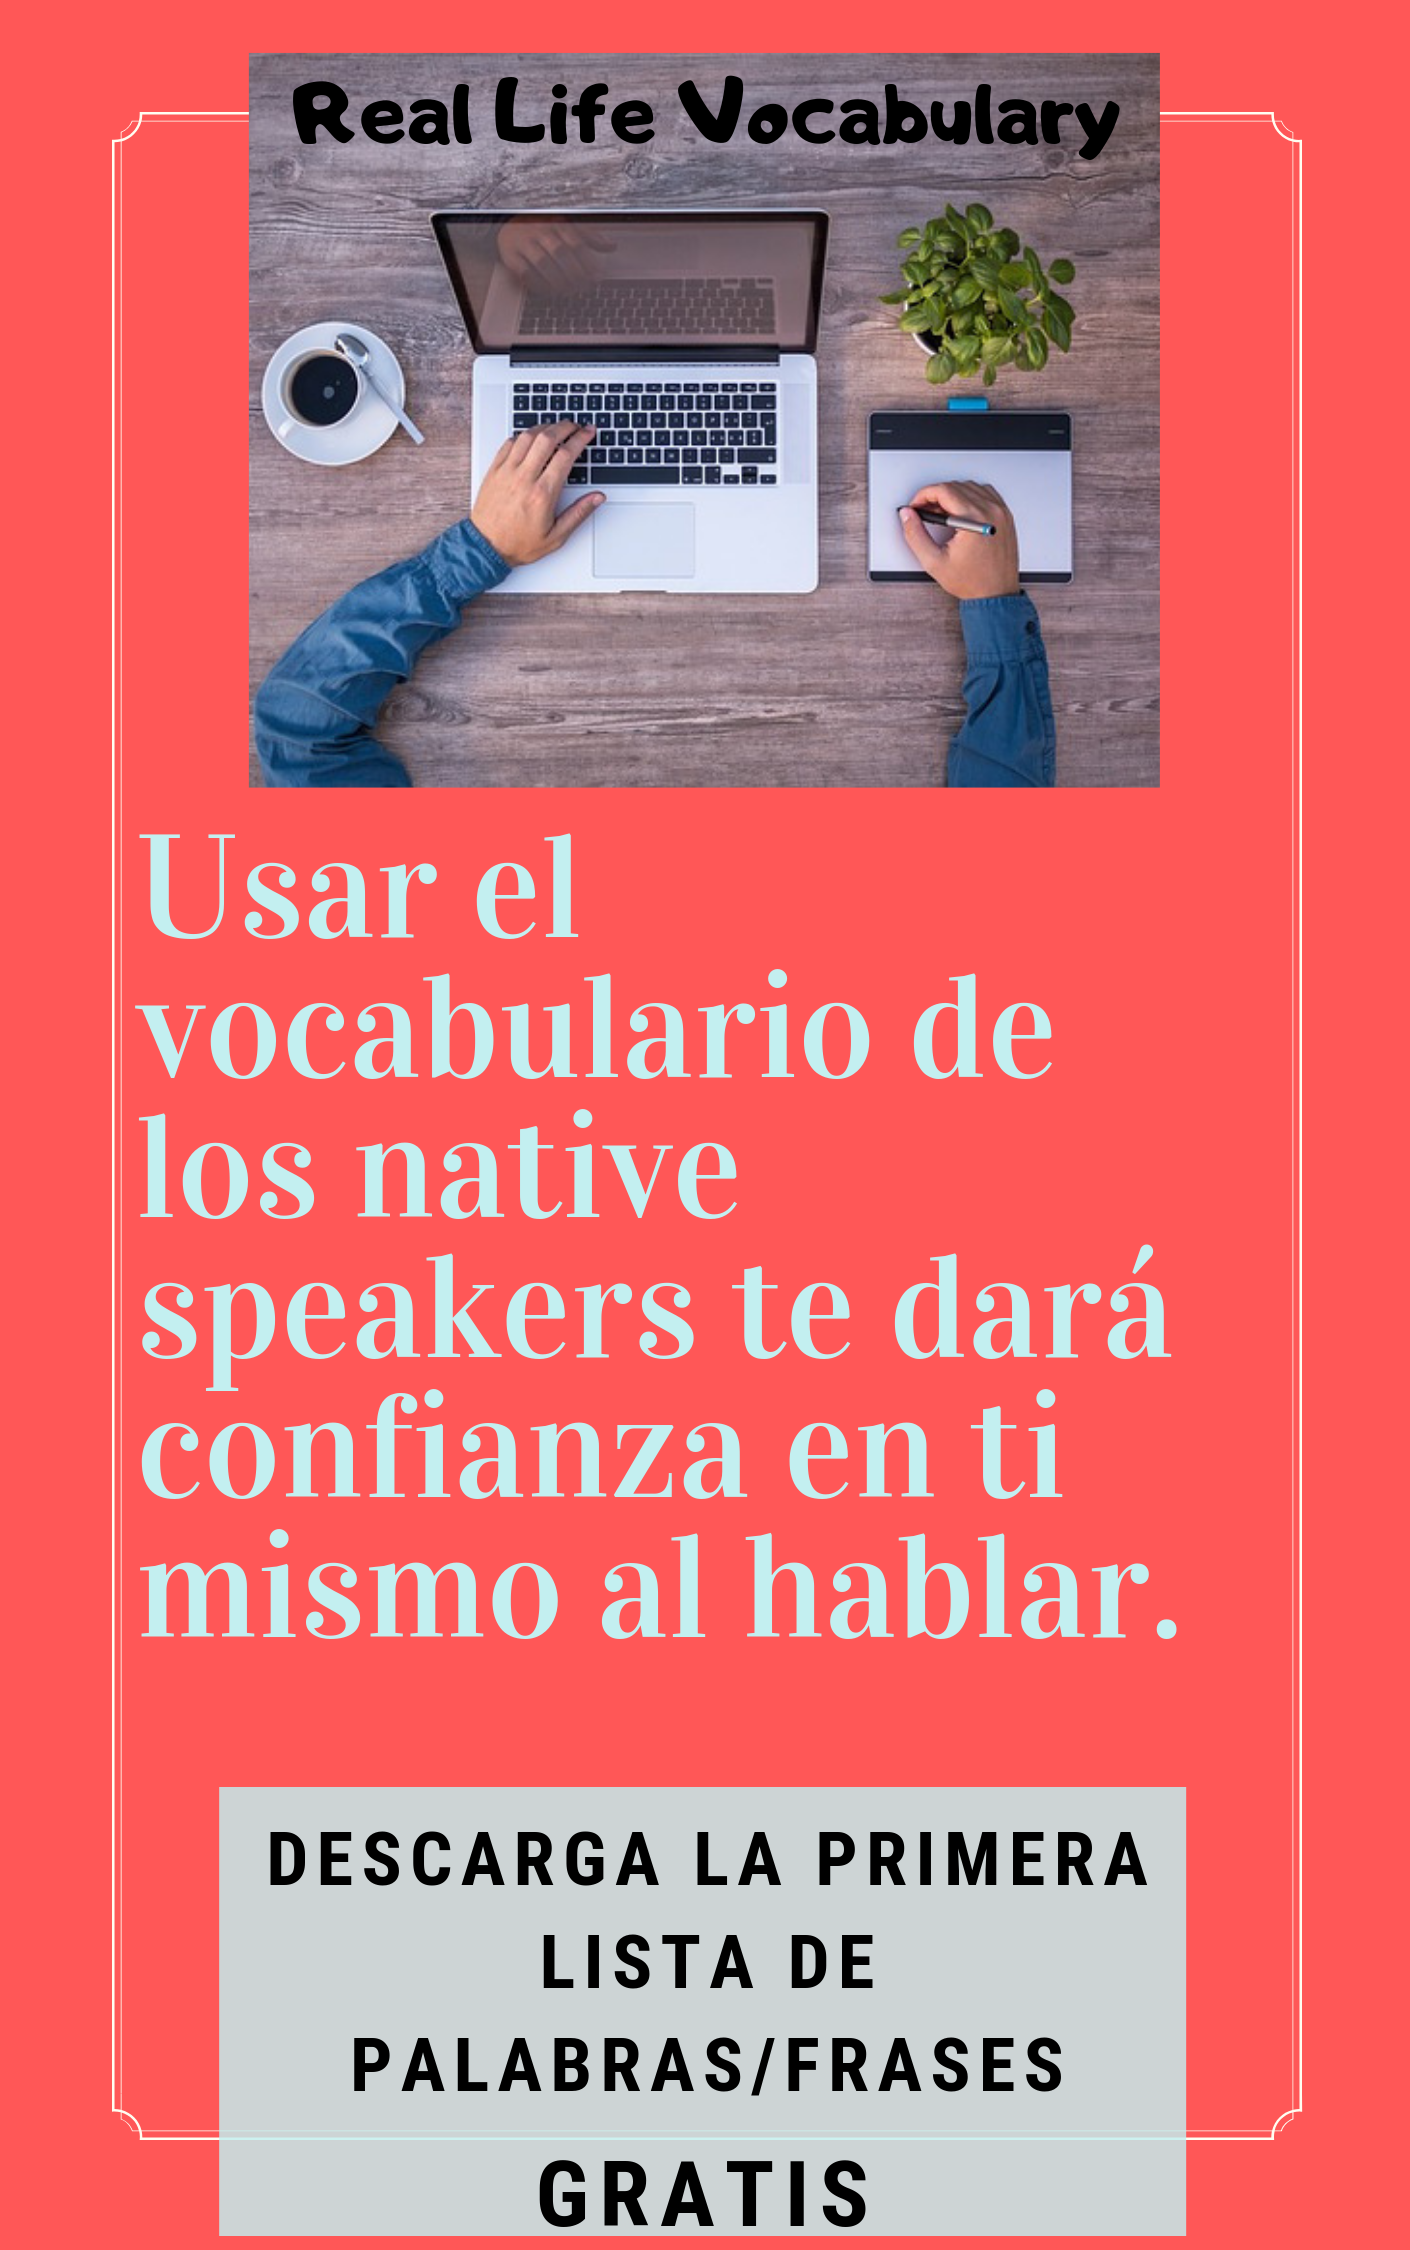 Vocabulario de Native Speakers